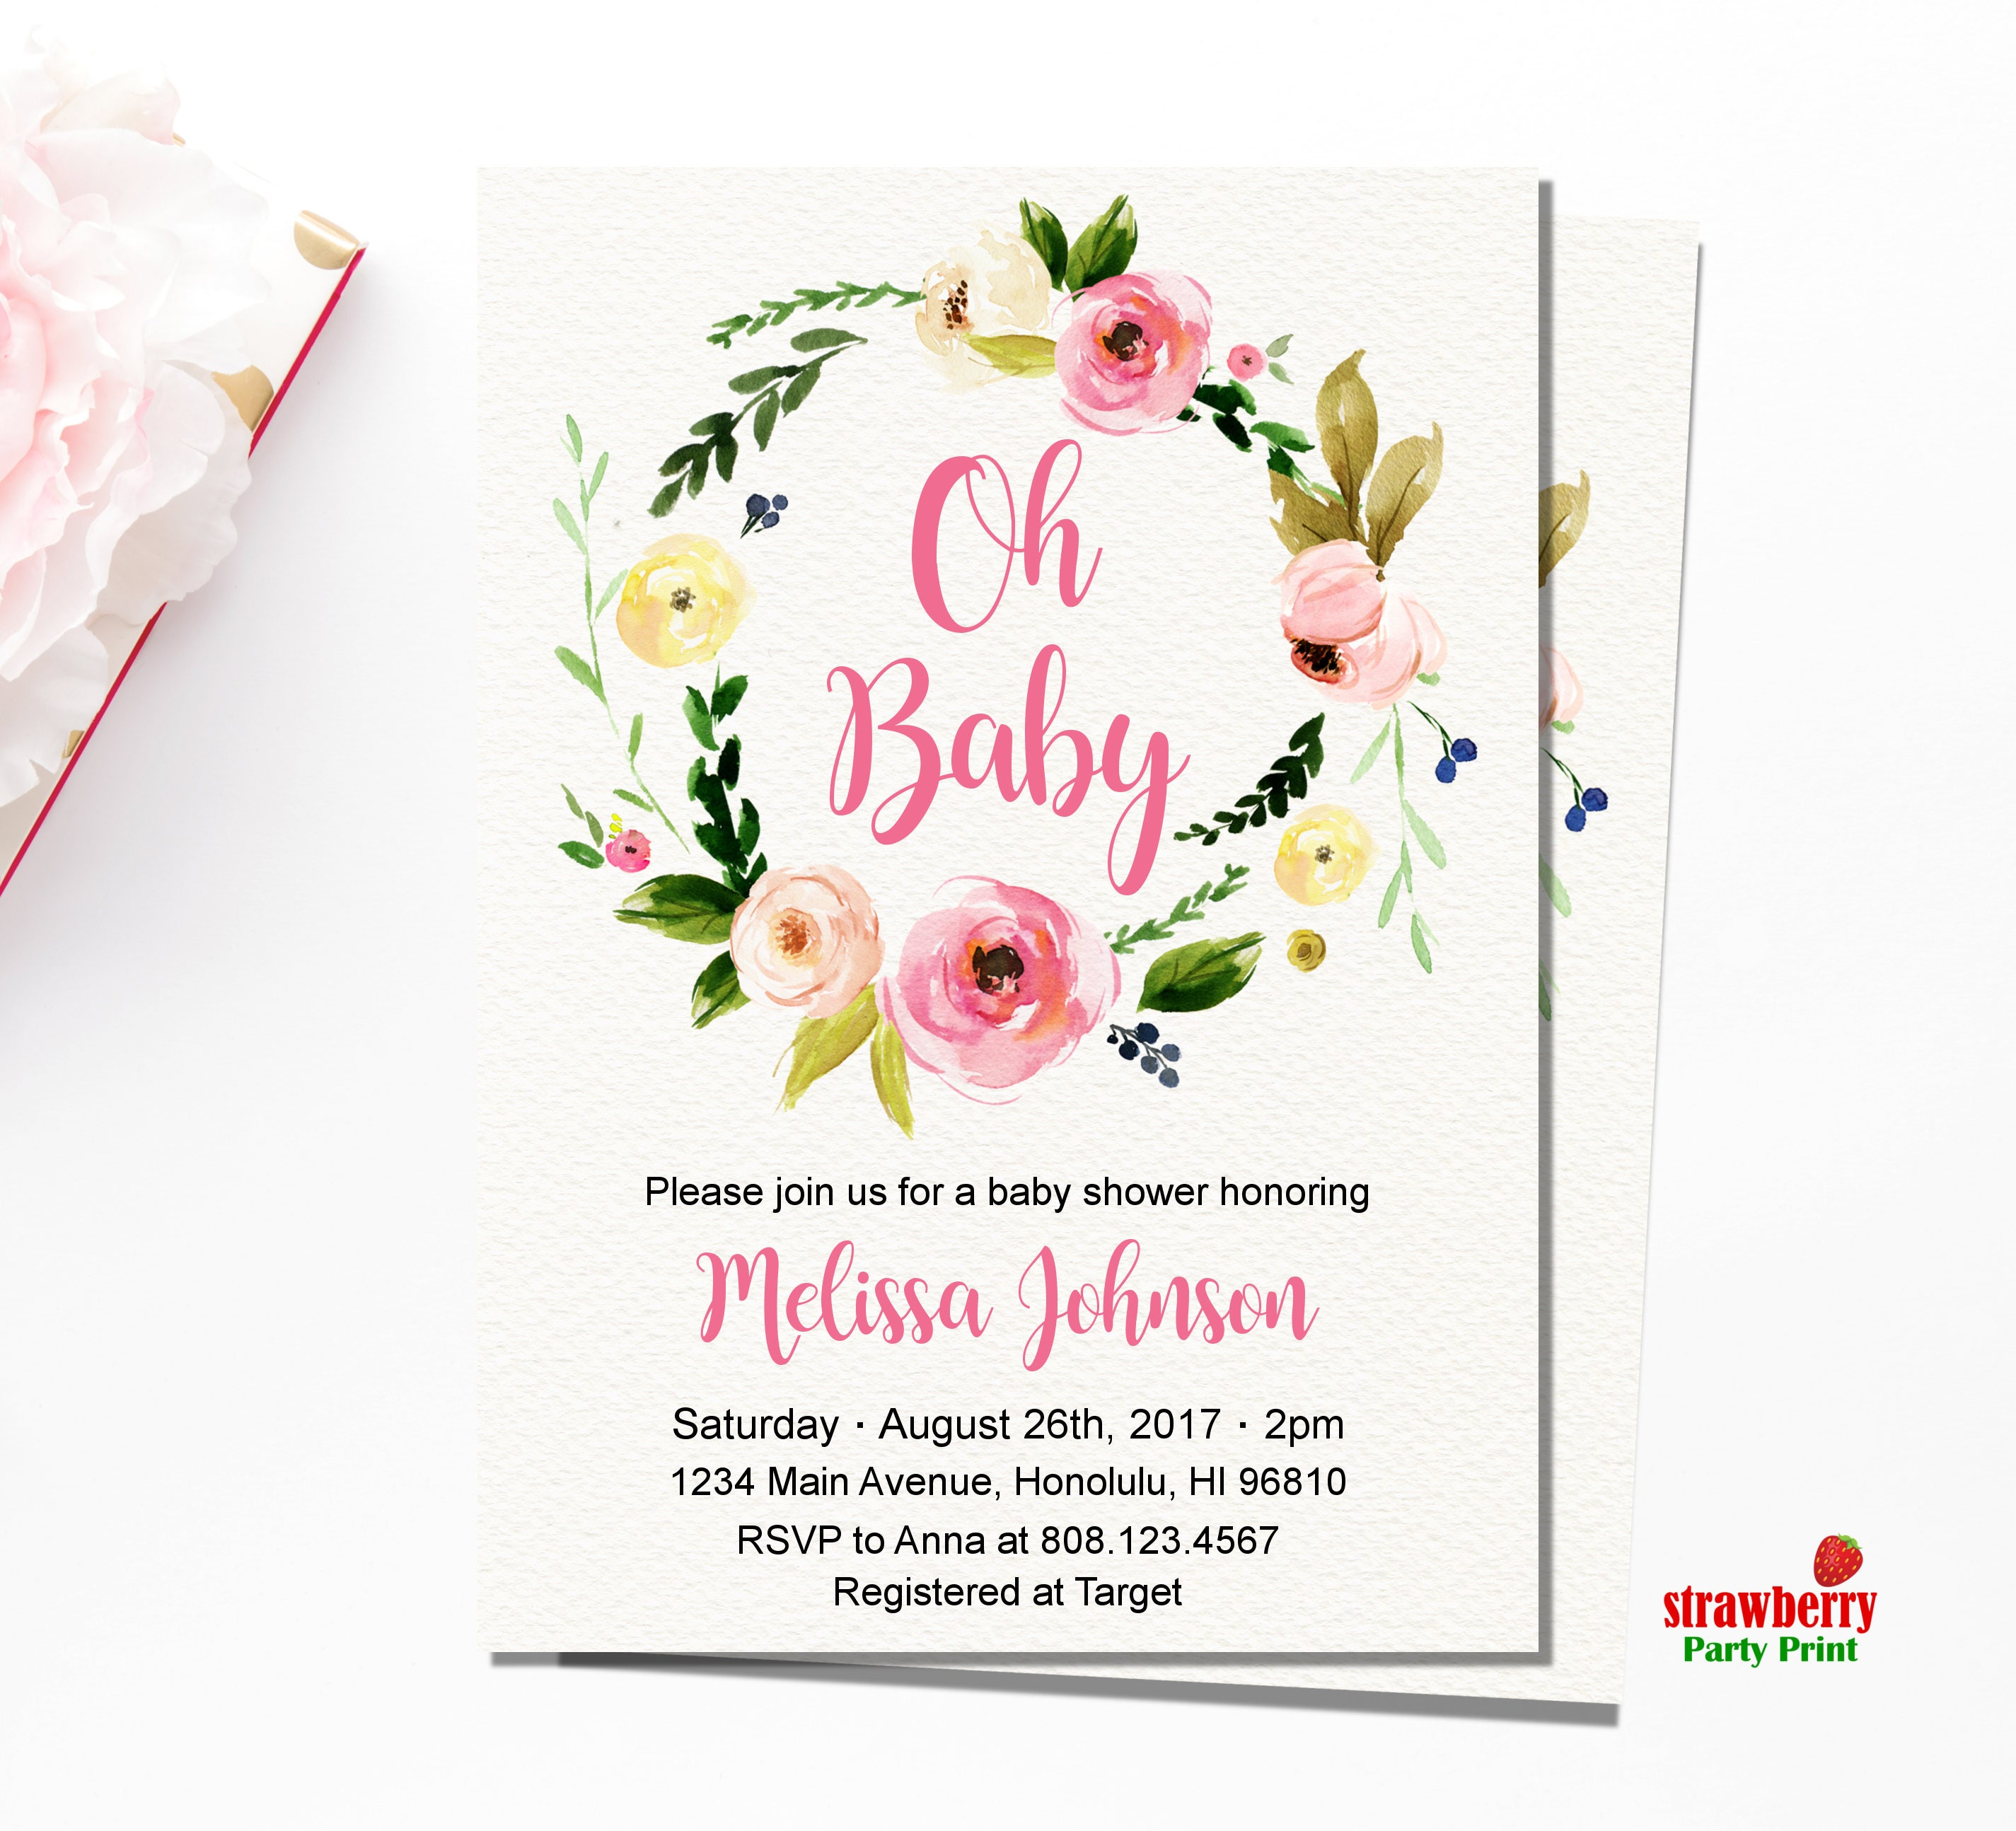 Boho Baby Shower Invitation. Floral Baby Shower Invitation. Oh Baby ...